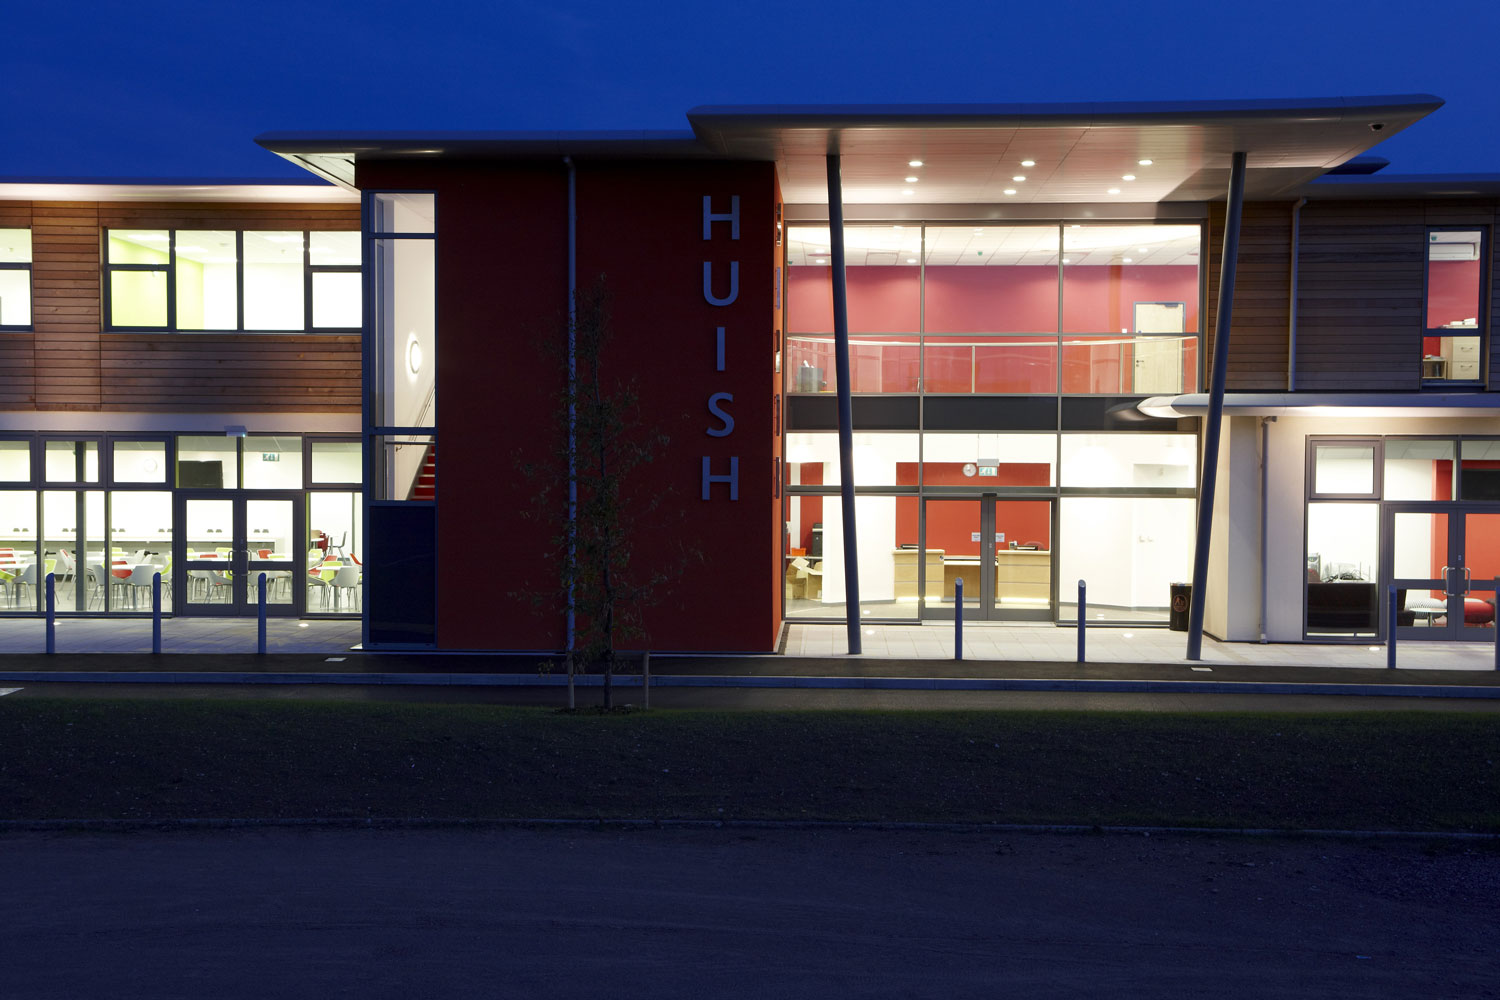 Front facade at dusk, Huish Episcopi Sixth Form, Langport, Somerset | Professional Commercial Photographer